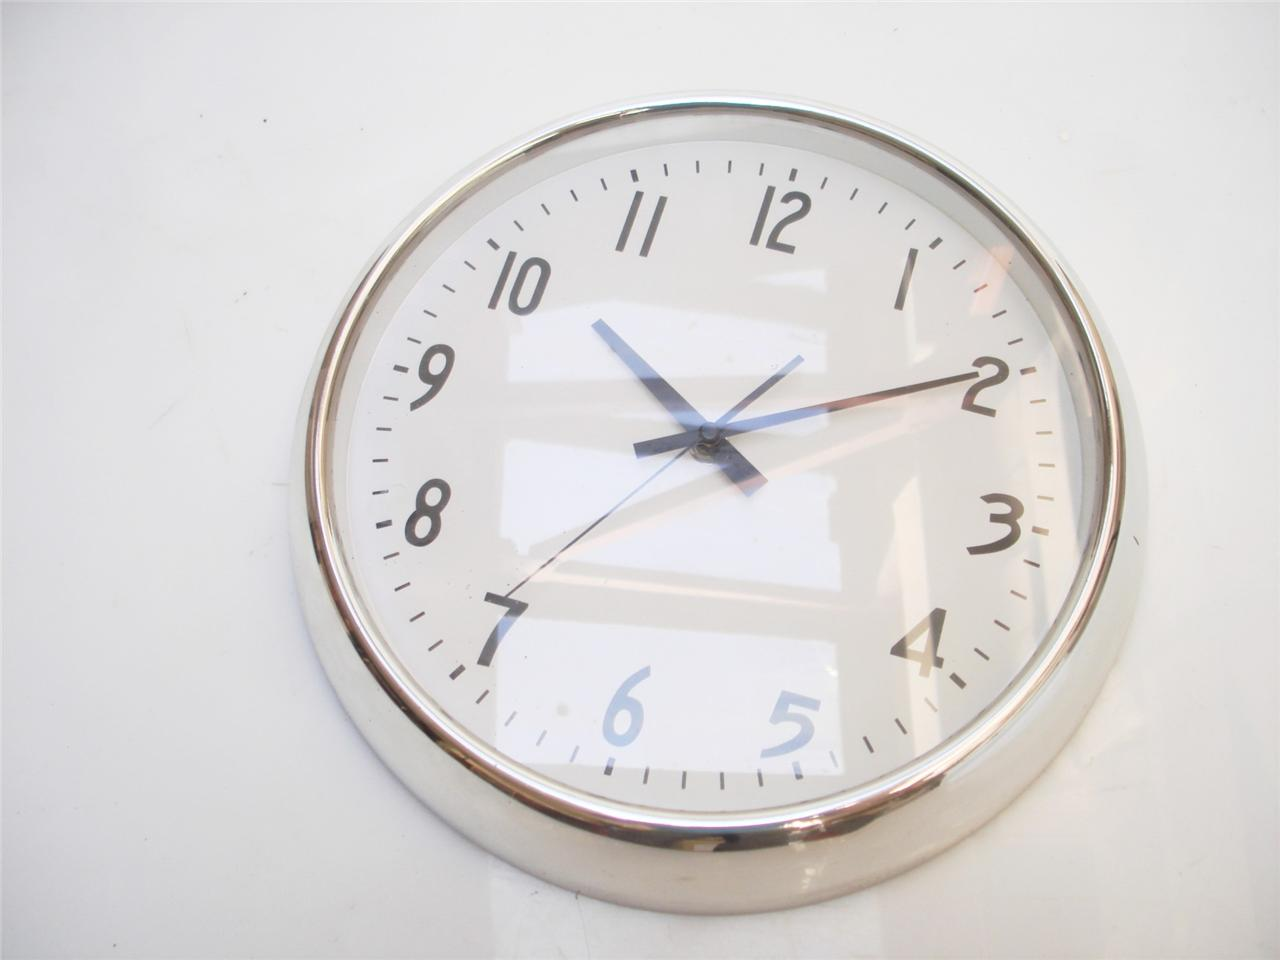 Clocks for bathroom wall - Office Clocks Wall Clocks Mince His Words Bathroom Wall Clocks